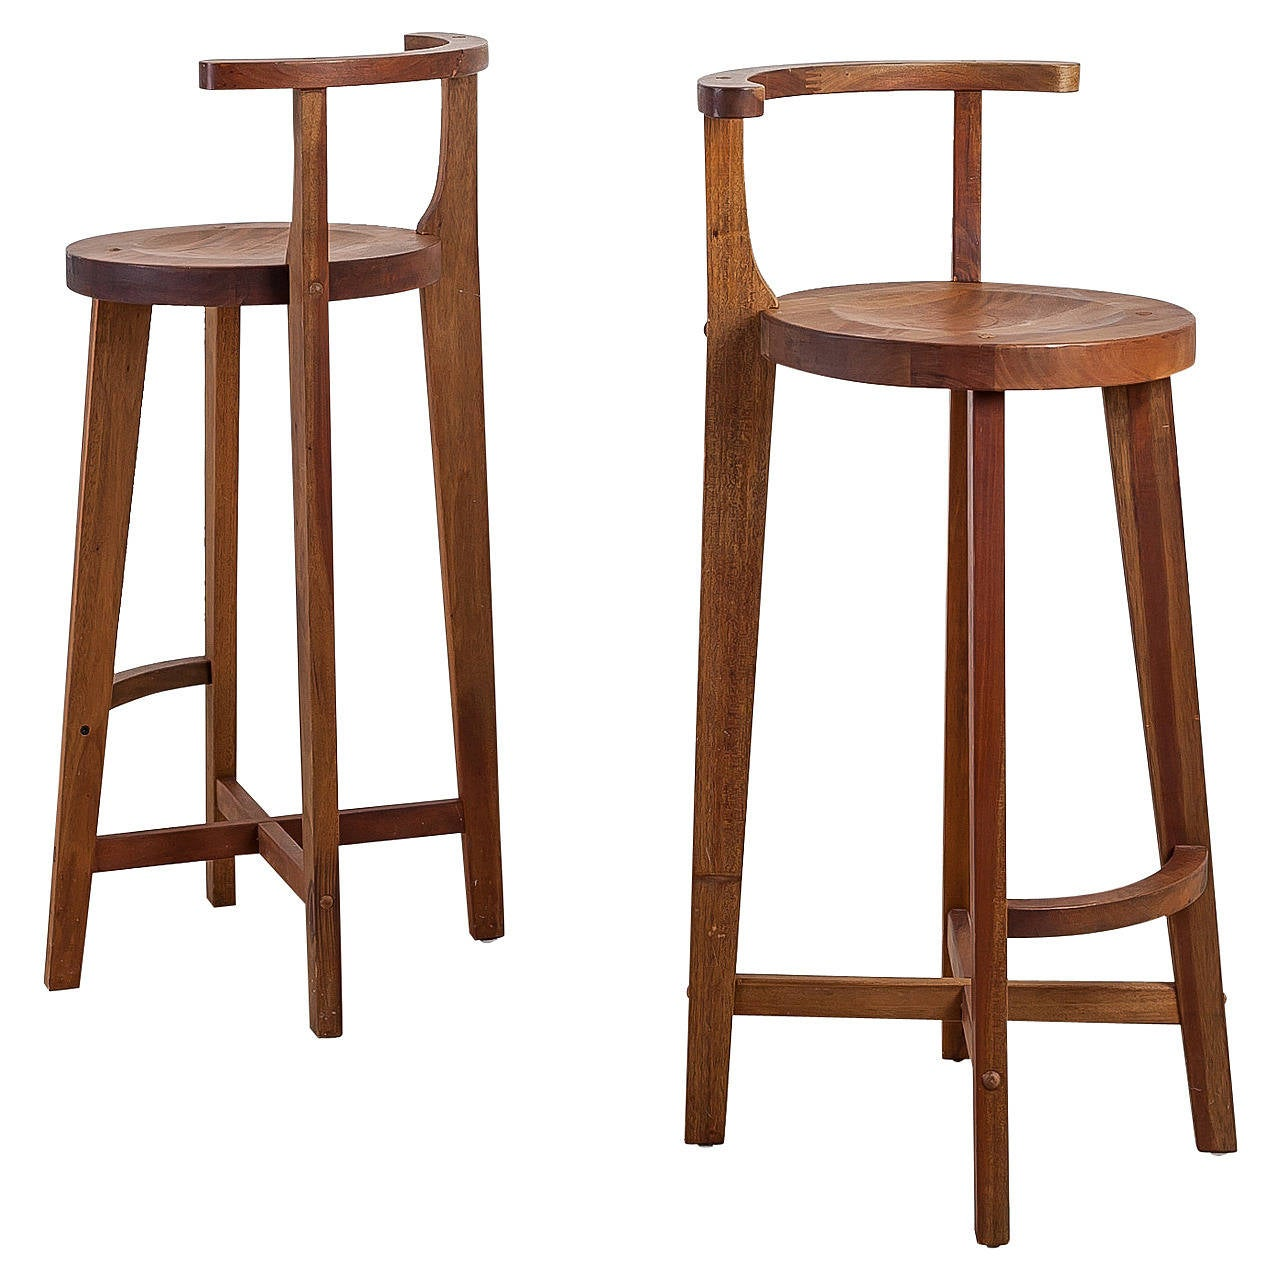 Pair Studio crafted wooden bar stools with rounded back rests 1  sc 1 st  1stDibs & Pair Studio crafted wooden bar stools with rounded back rests For ... islam-shia.org